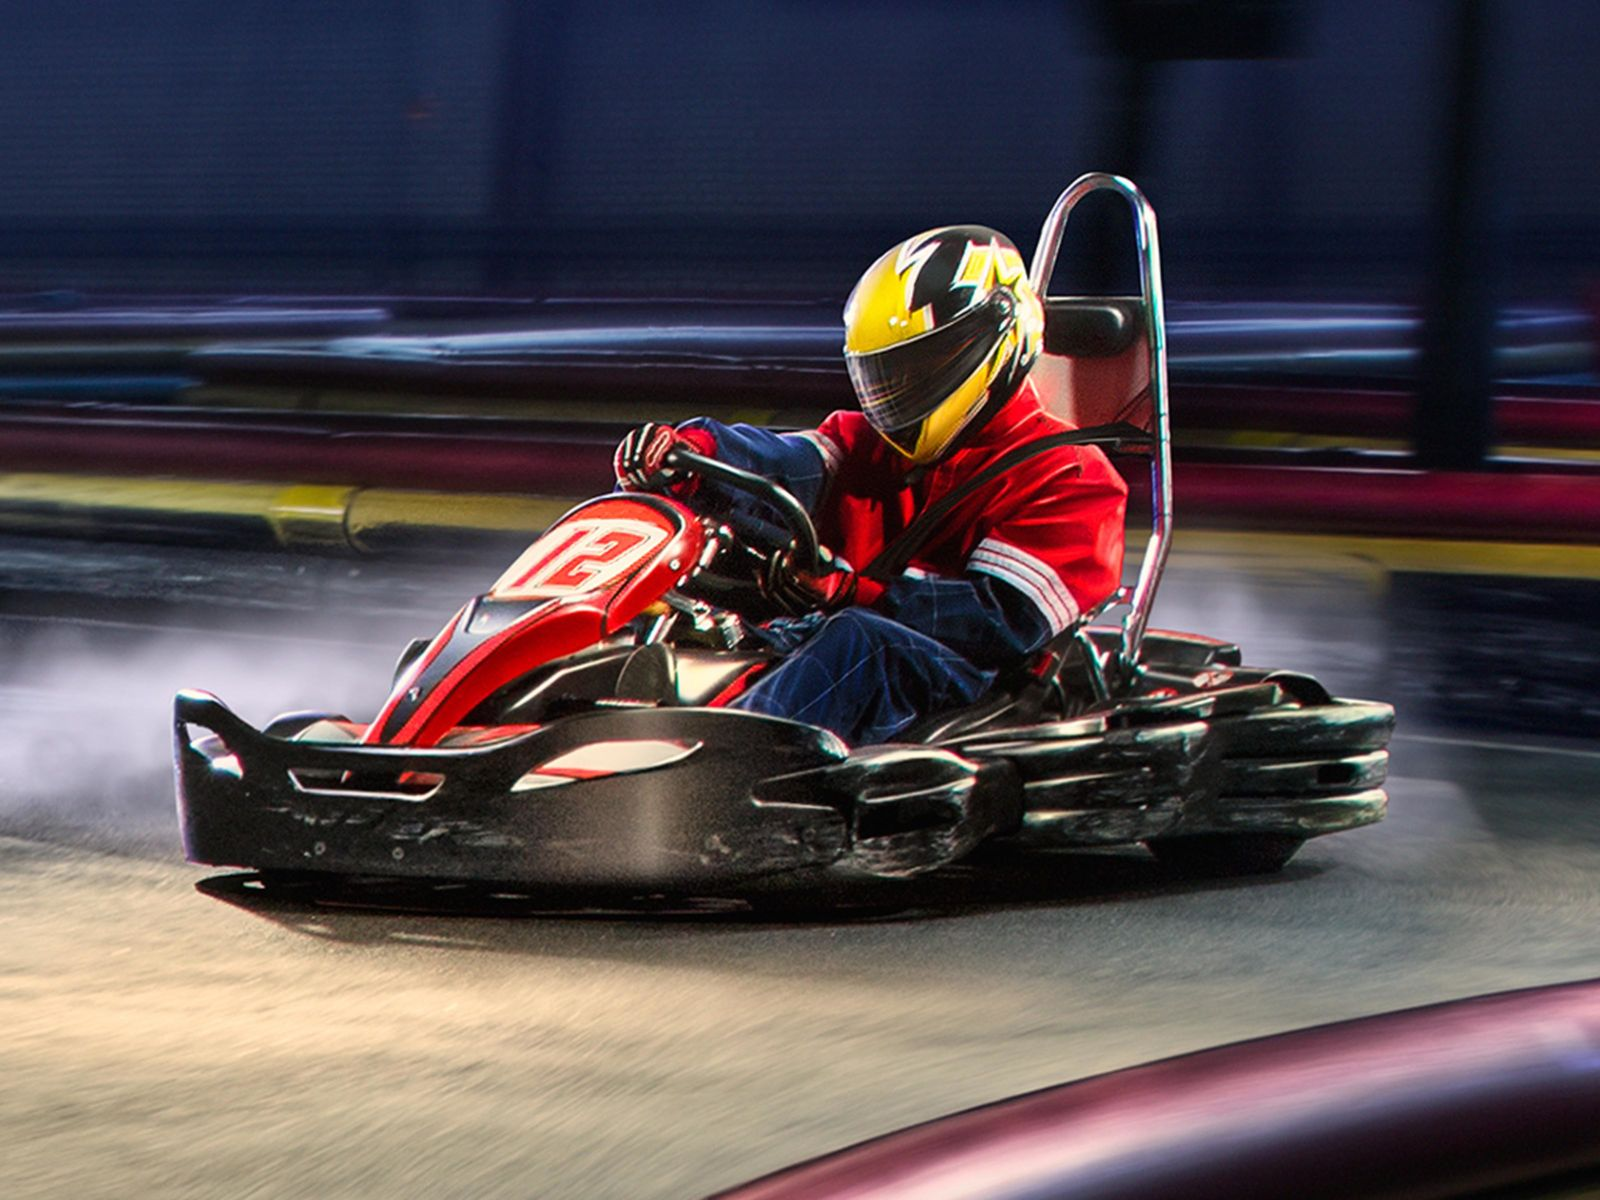 Why go-karts are fun for kids?